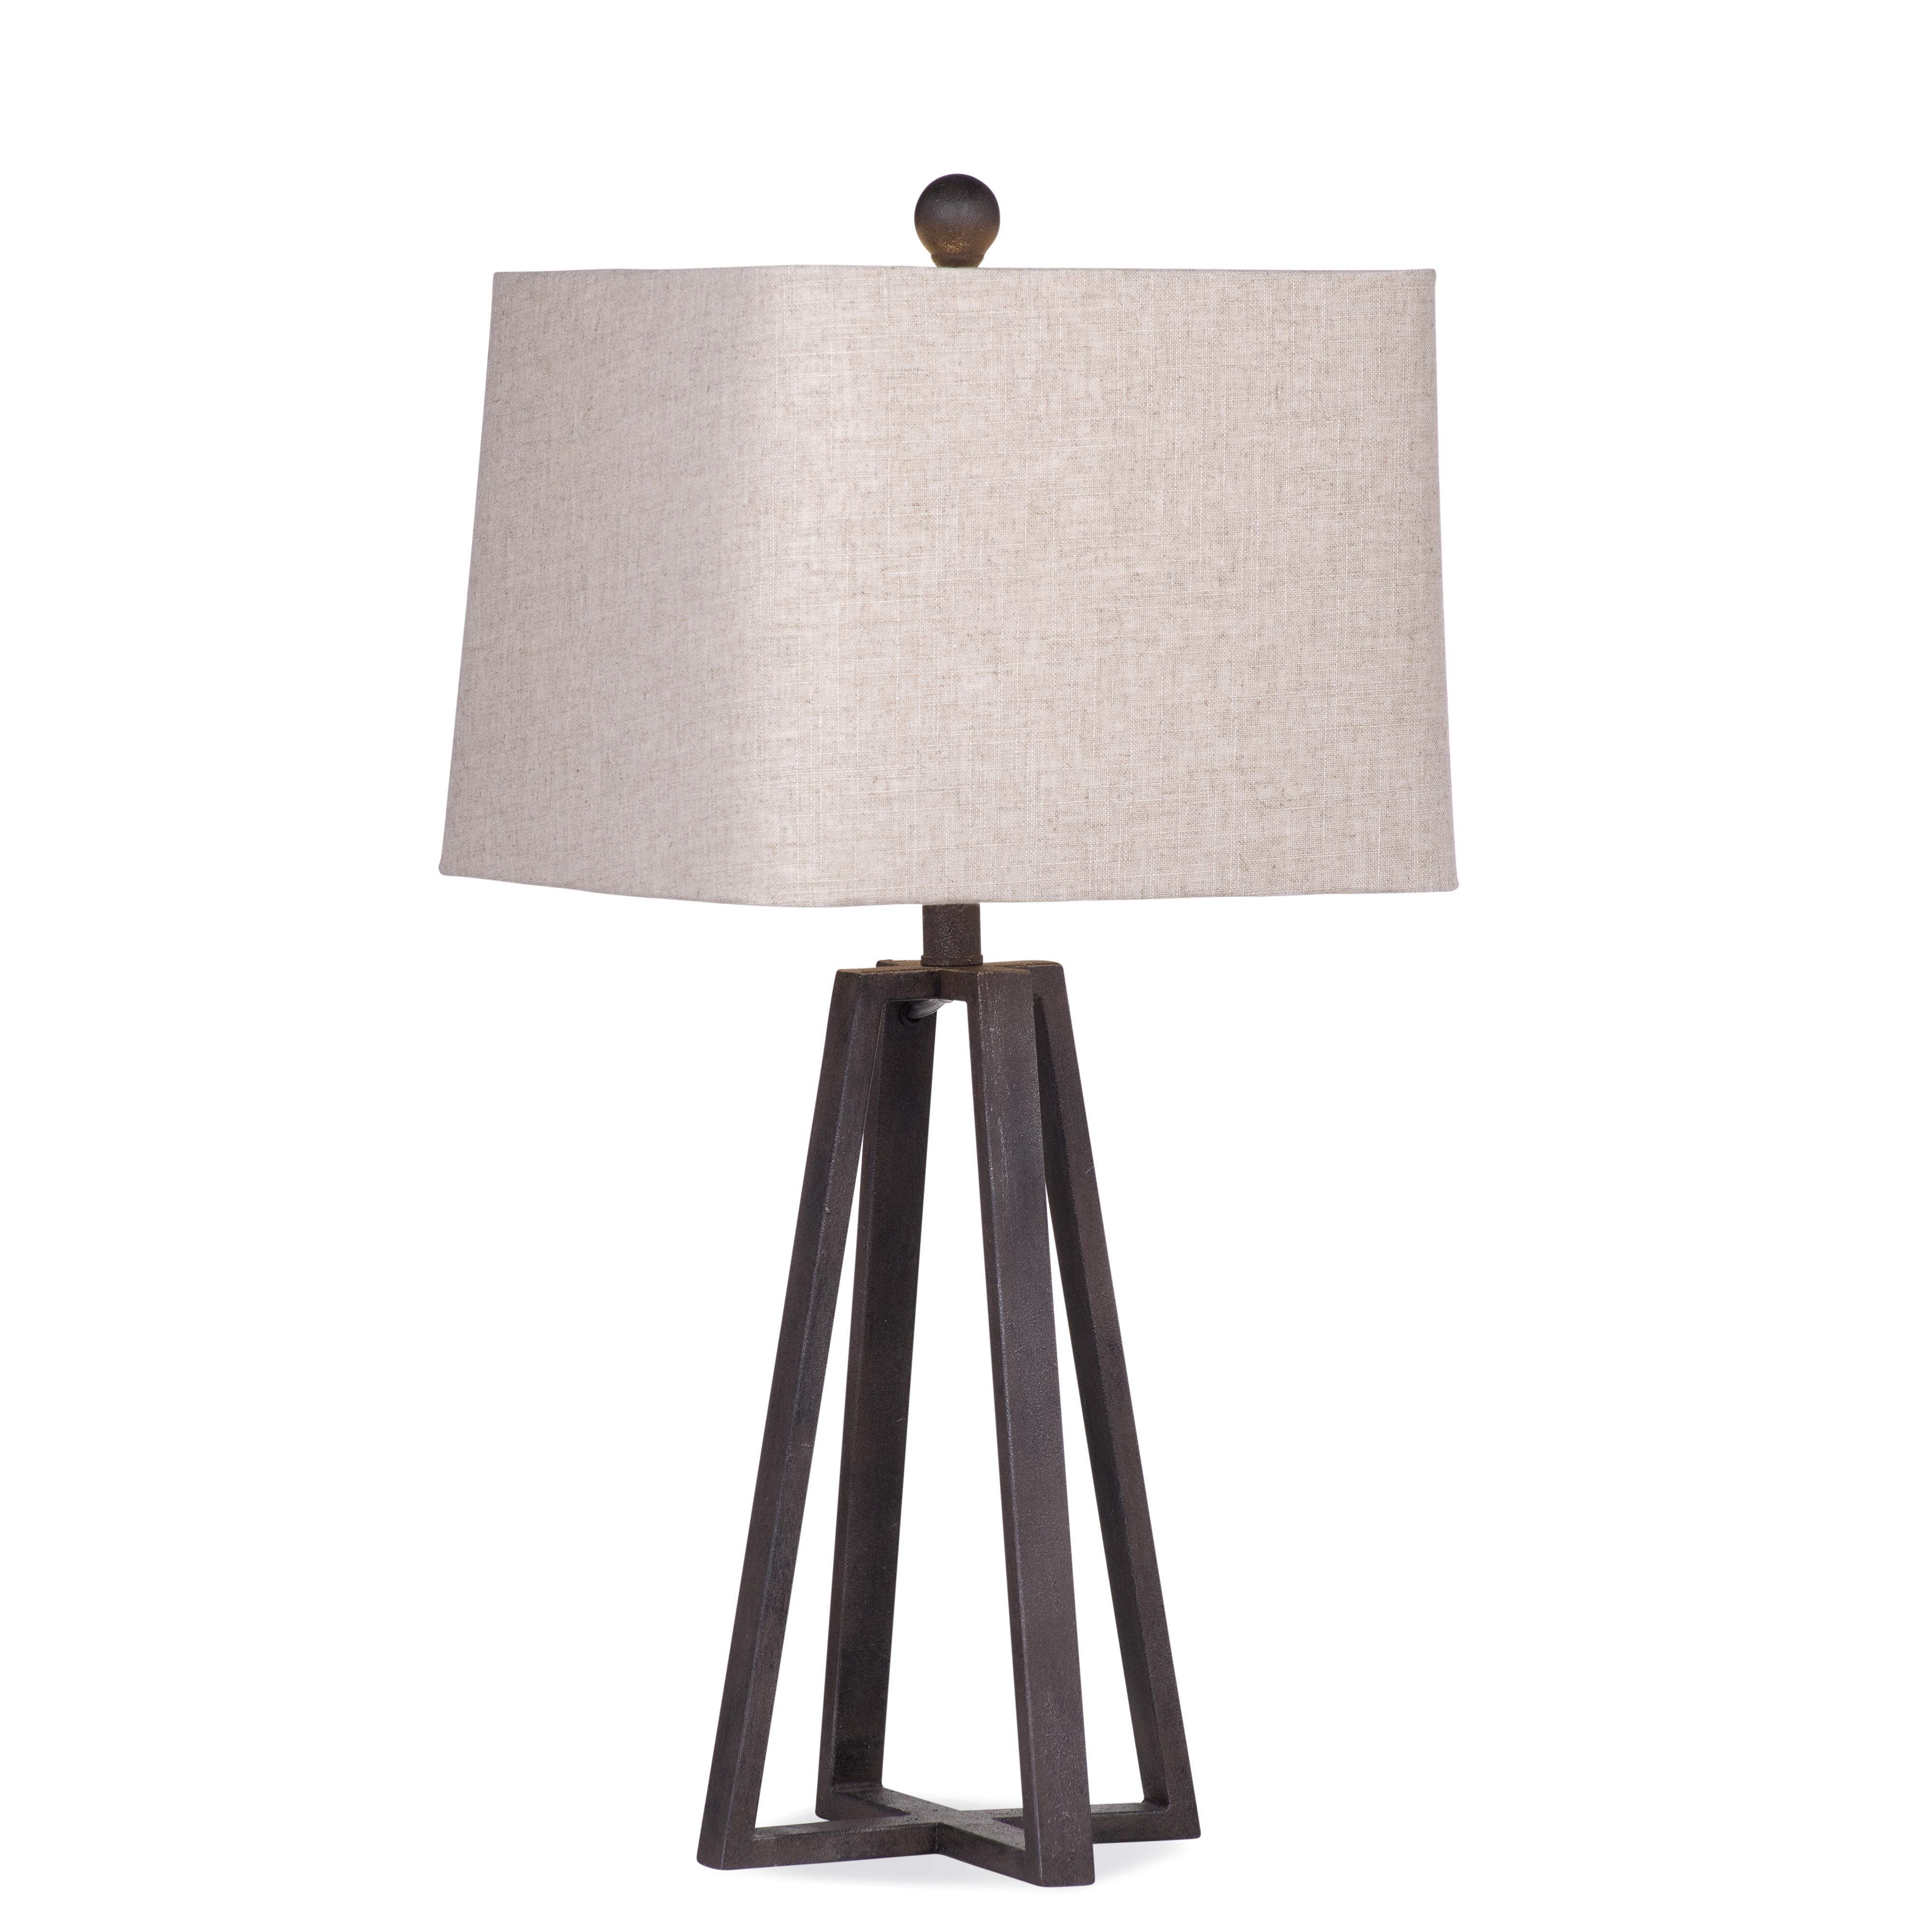 Belgian Luxe Denison Table Lamp by Bassett Mirror at Rooms for Less